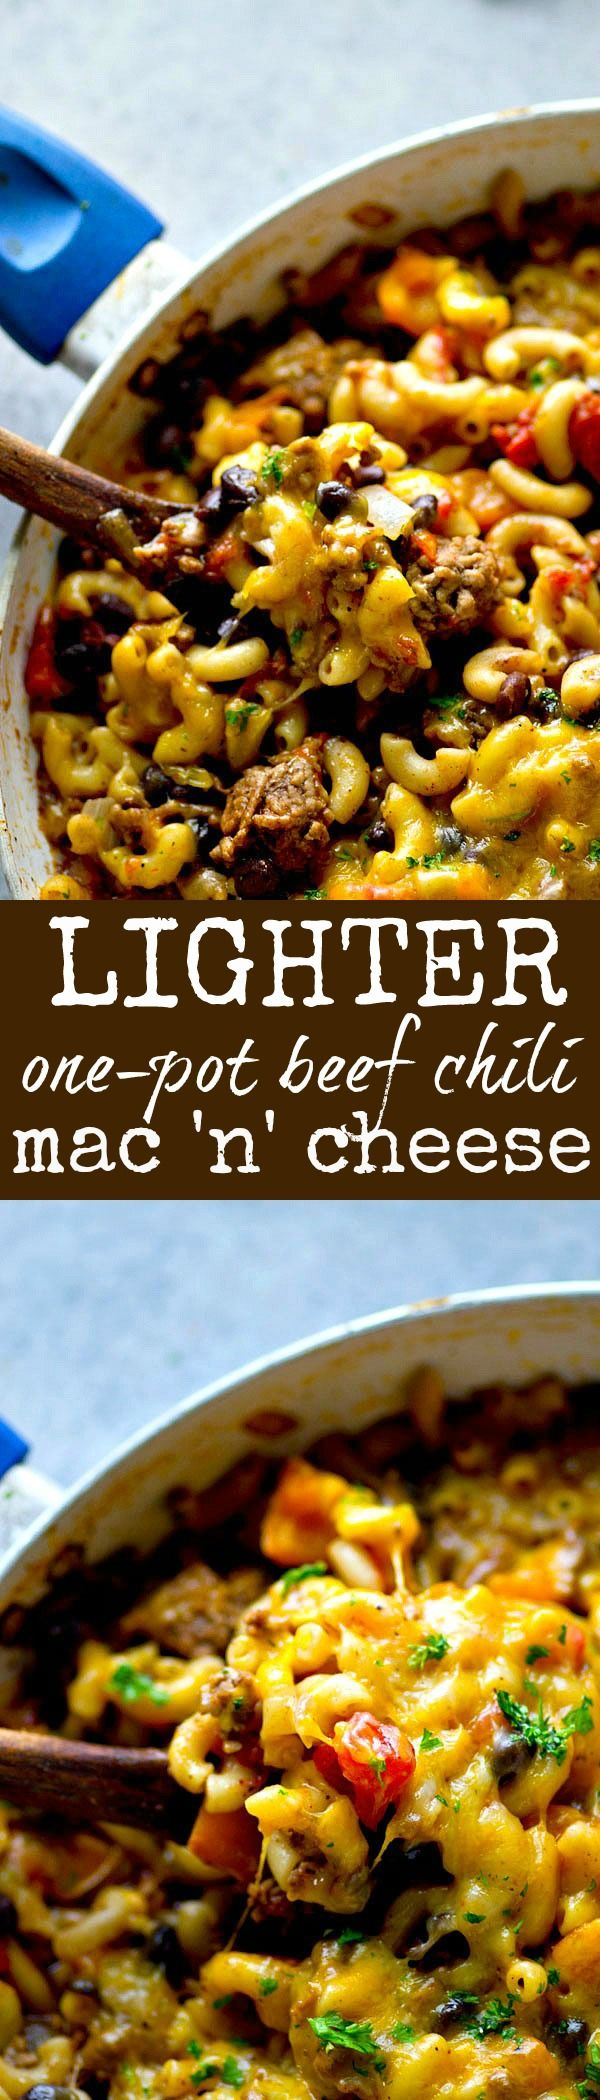 Made entirely in ONE pot and lighter on the calories, this hearty beef chili mac 'n' cheese is going to quickly become the most-requested dinner in your house!